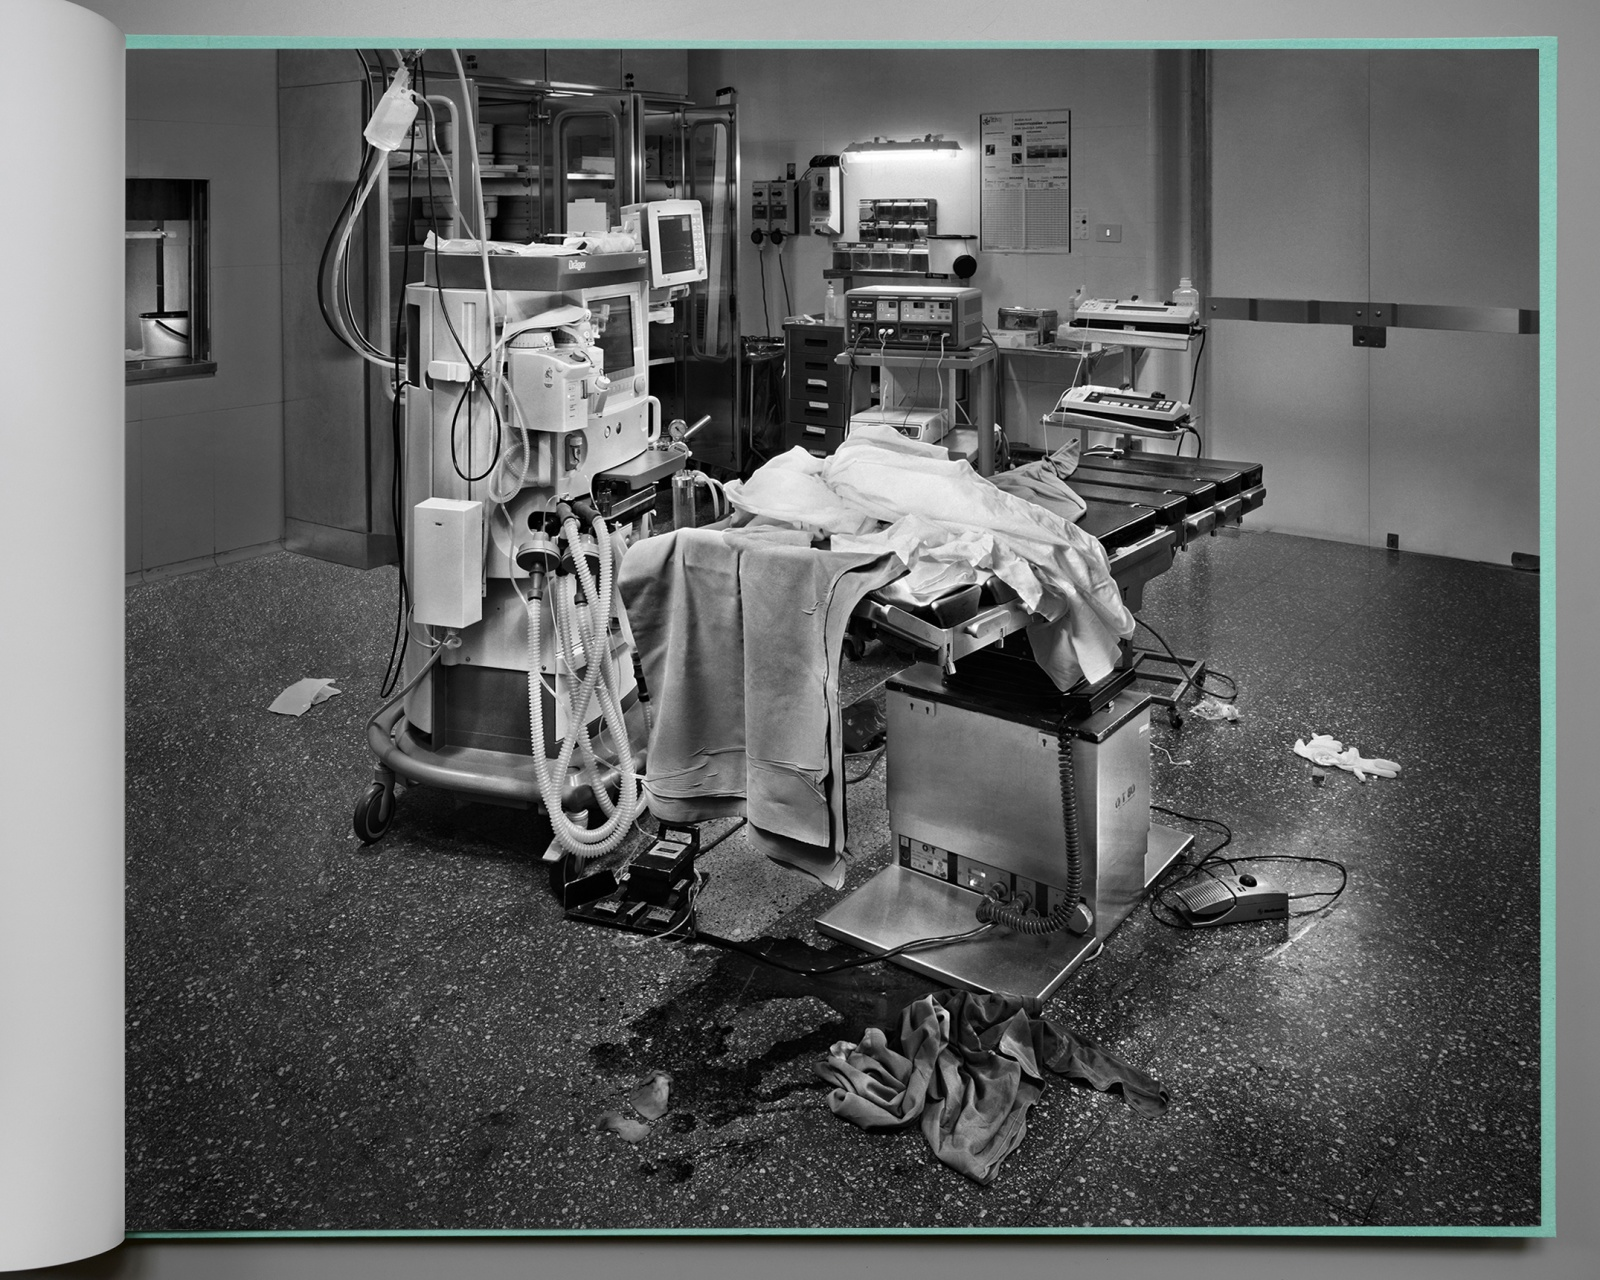 south afr operating theatres - 988×790